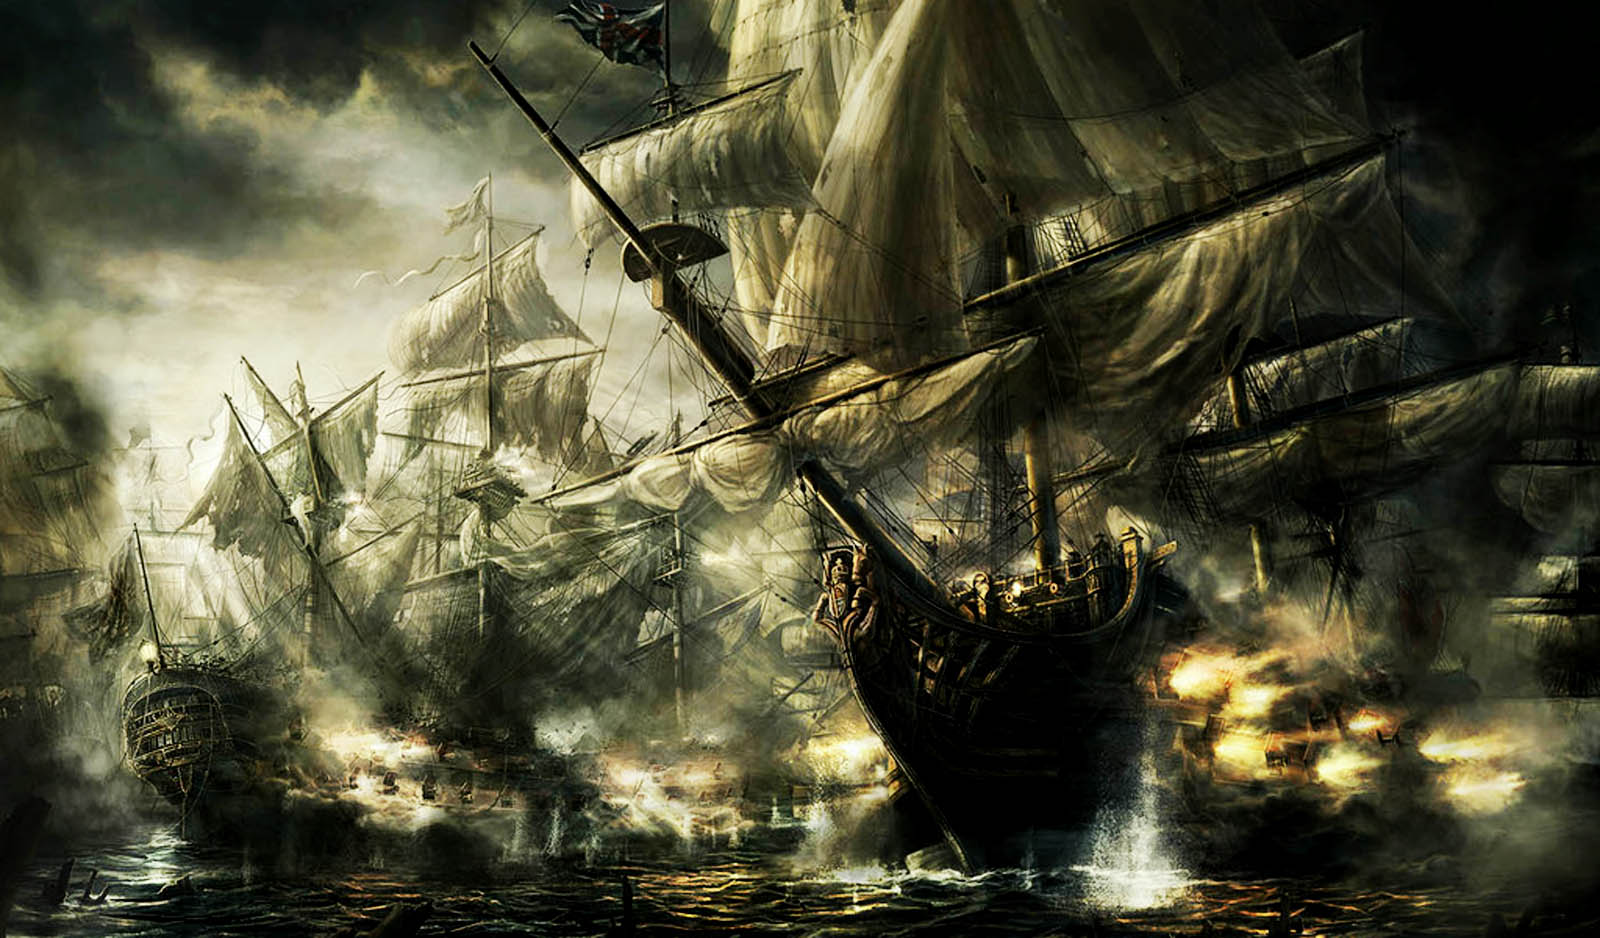 Pirate Ships Awesome HD Wallpapers Download Wallpapers in HD for 1600x938